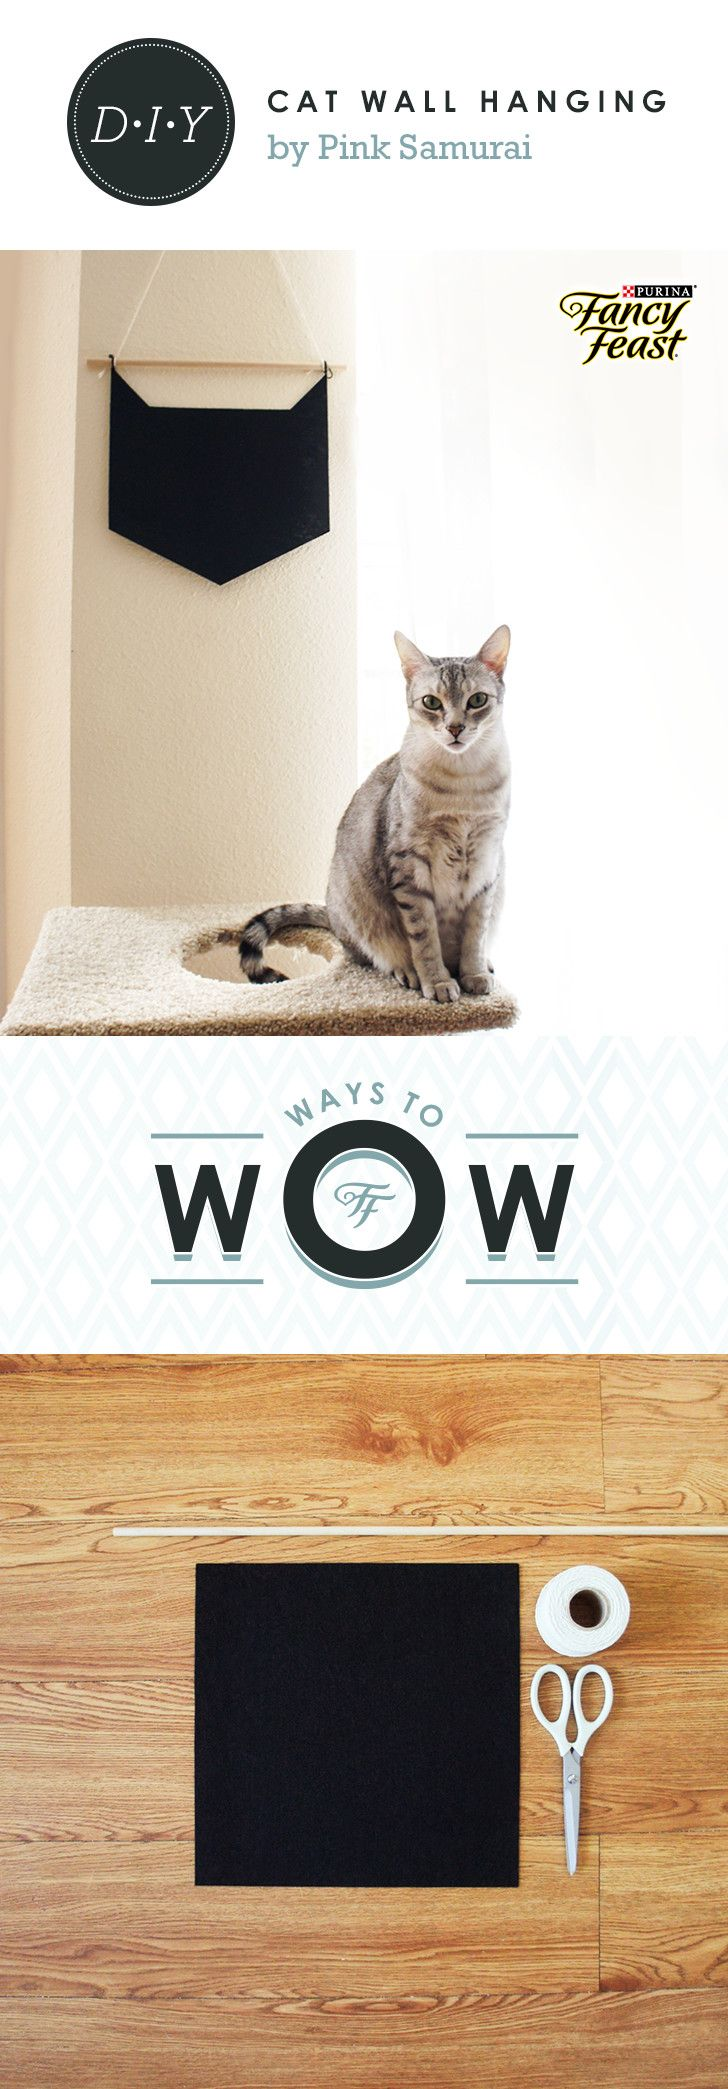 """Geometric Cat Wall Hanging: This cute and contemporary DIY wall decoration will wow cats and cat lovers alike. Click through to see the how-to from Becky Helms of The Pink Samurai. #WaysToWow Supplies: Black Felt (12"""" x 12"""") - Dowel Rod (at least ¼"""" thick) - Twine - Scissors."""